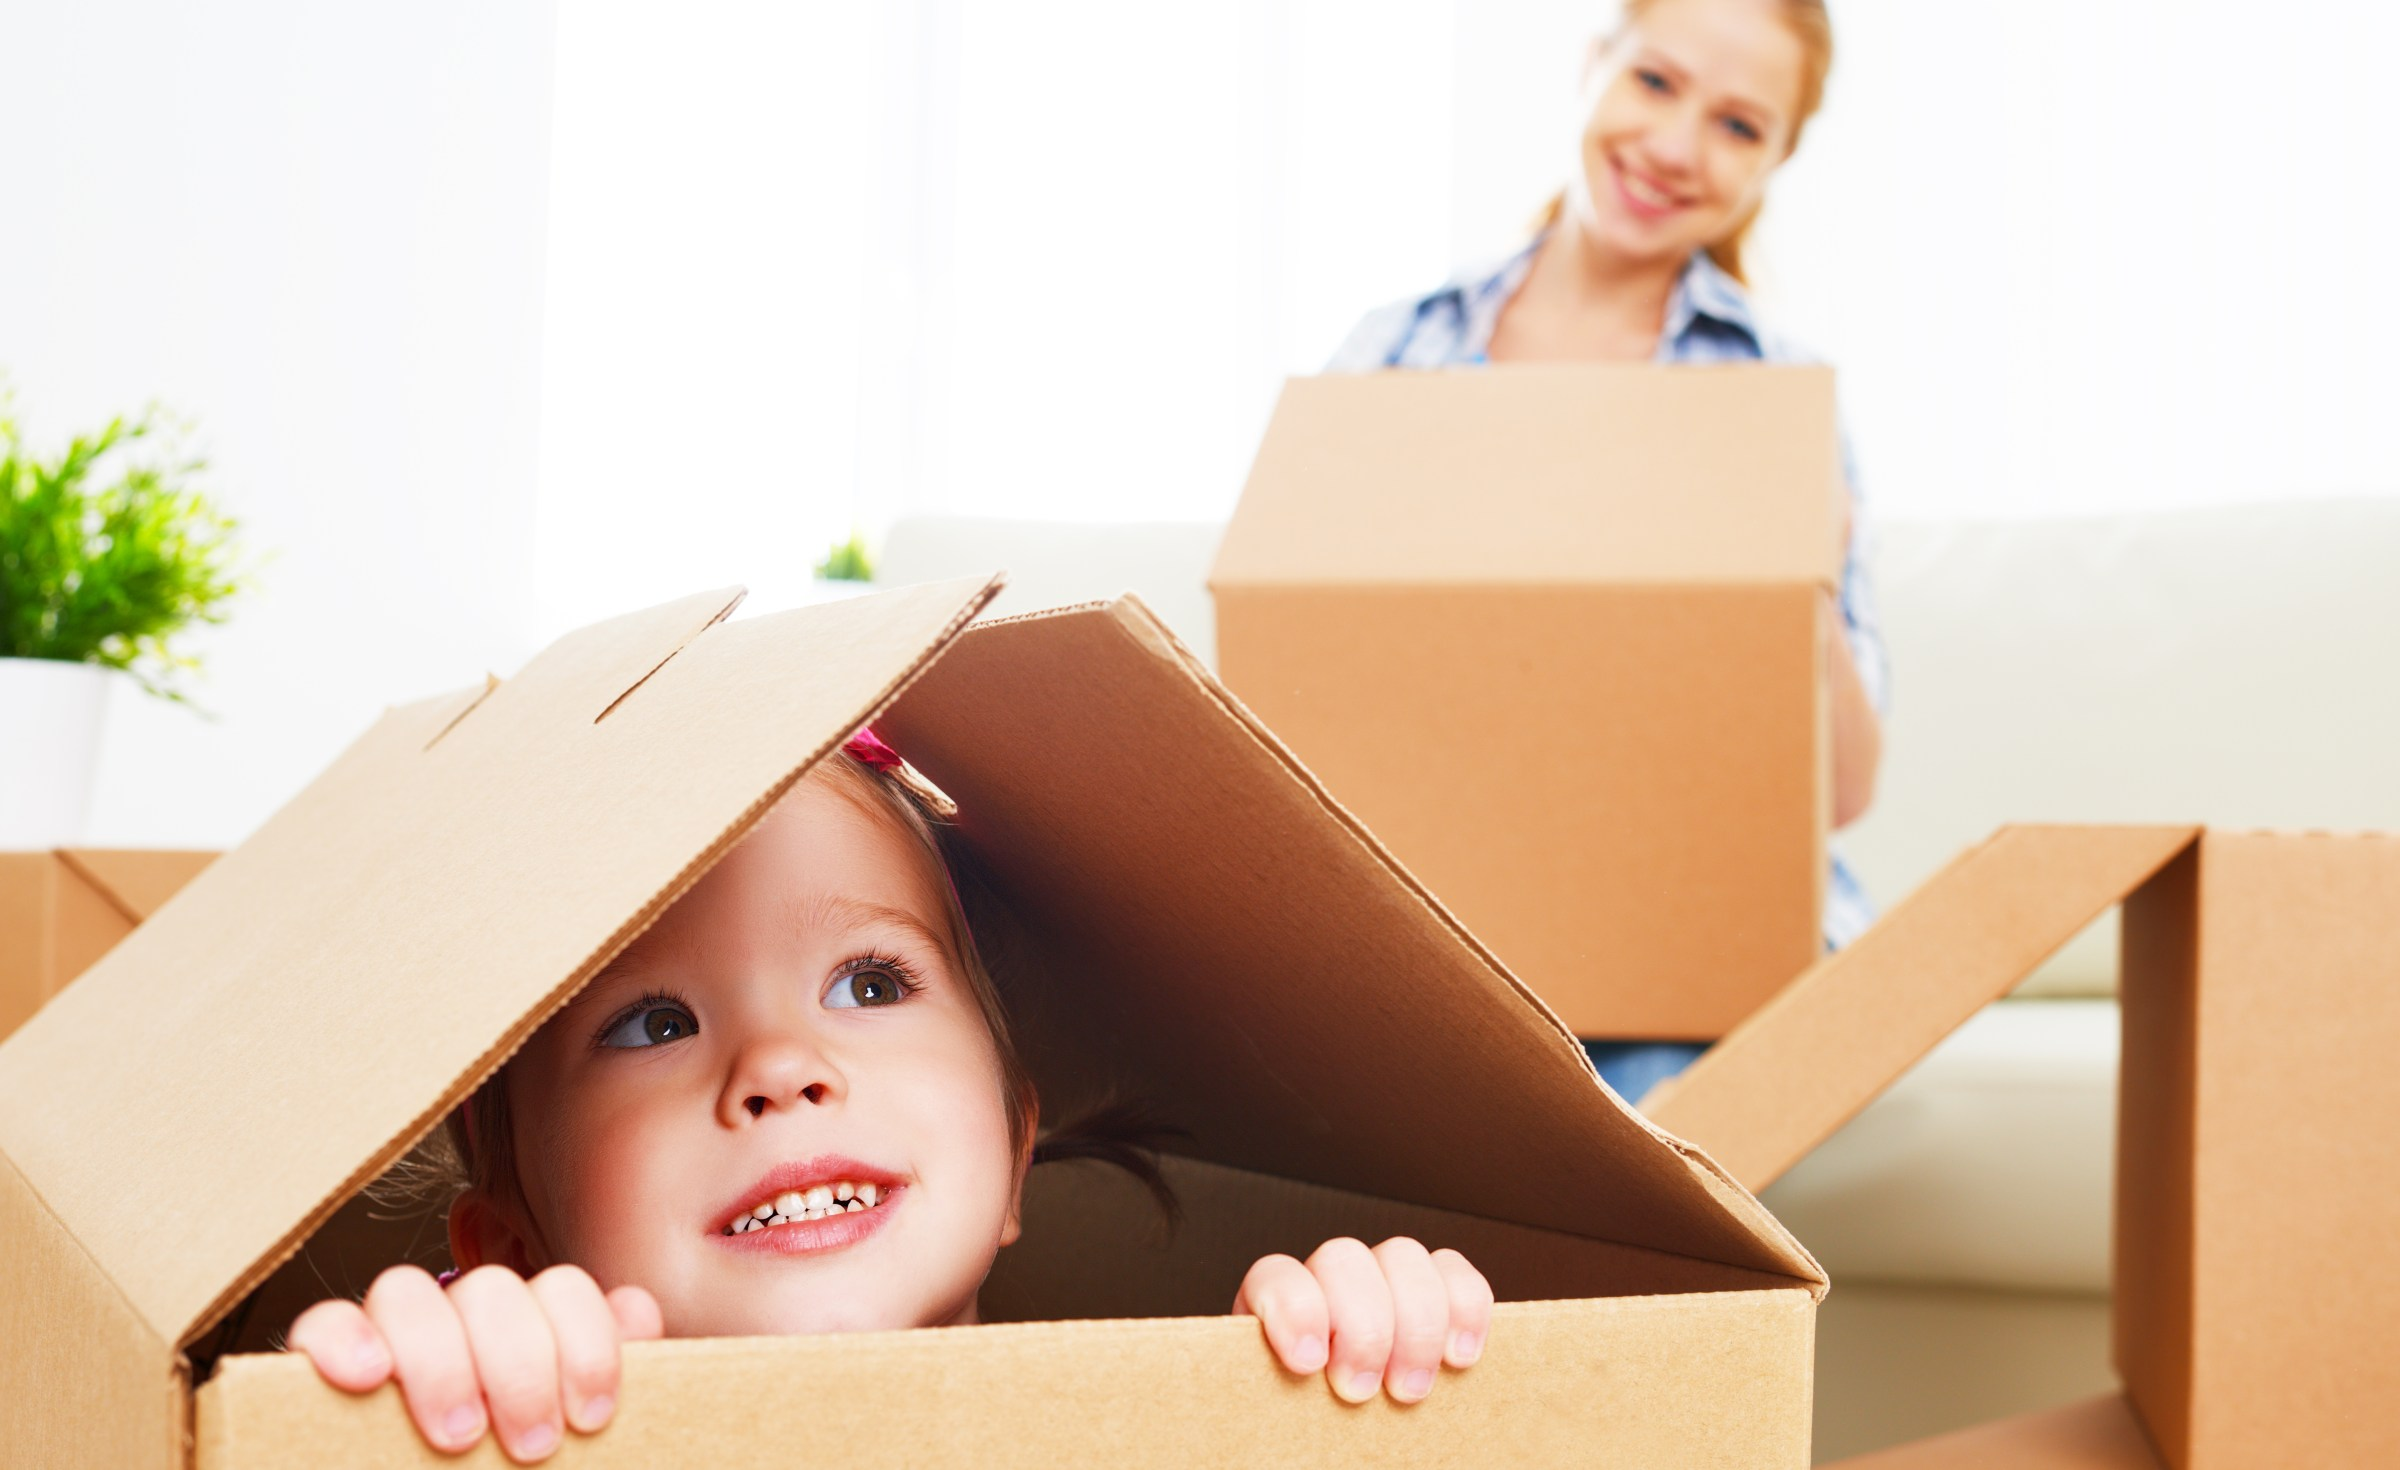 The Top Six Things to Consider When Hiring a Mover